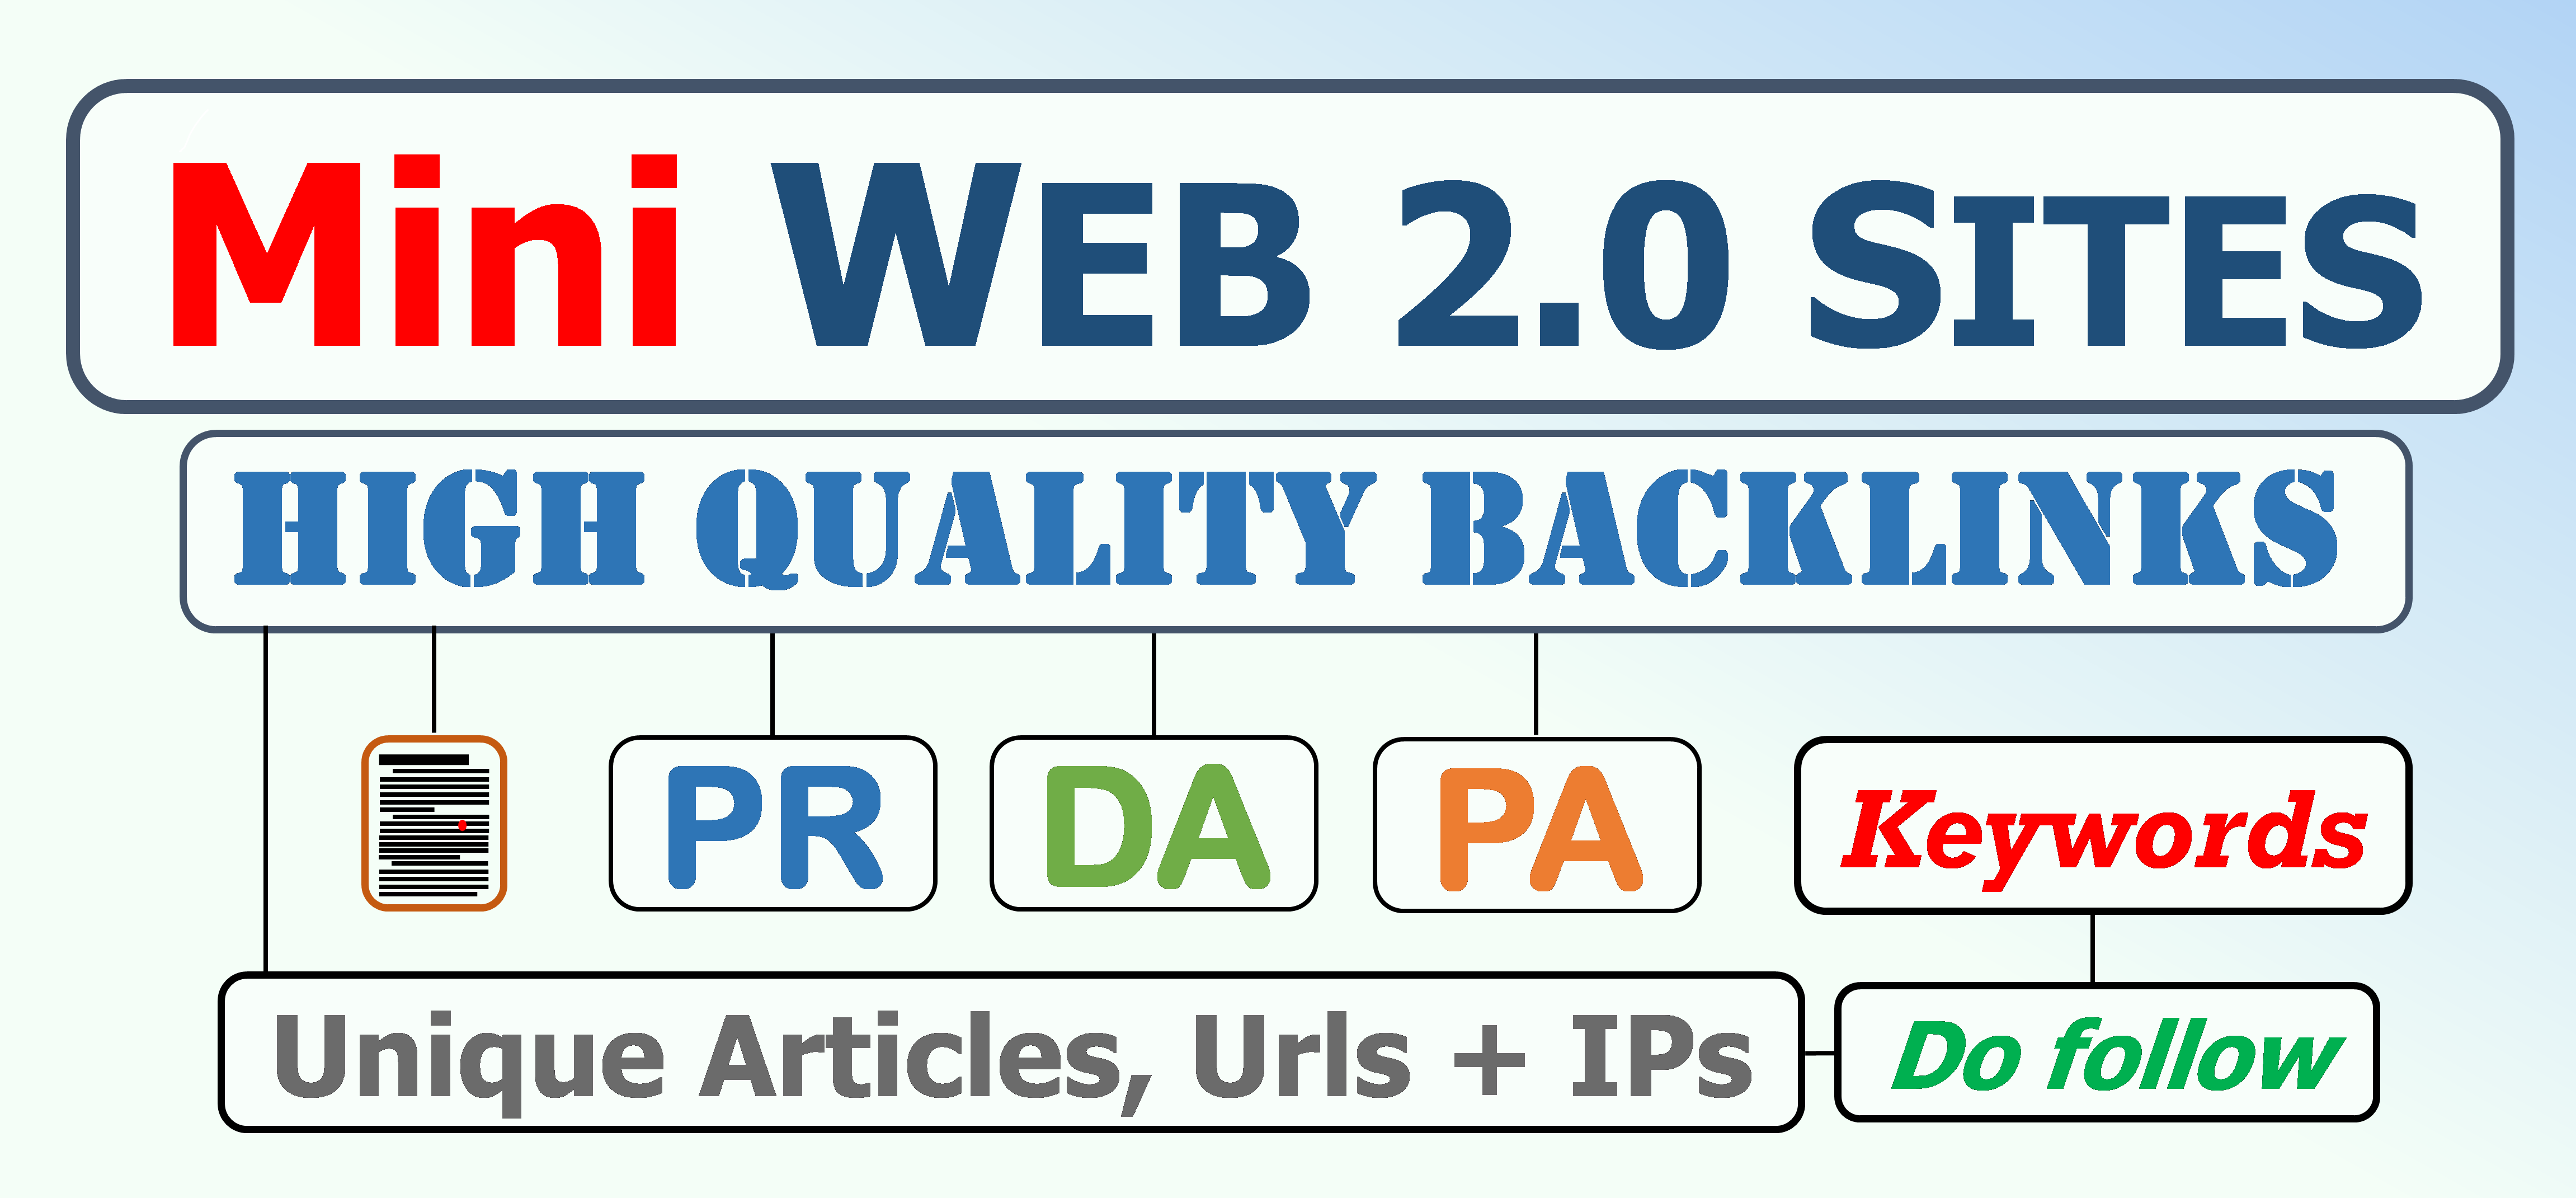 Mini Web 2.0 Backlinks Panda Safe 4.2 do-follow with PR,  DA,  PA,  for Organic SEO Keyword Ranking